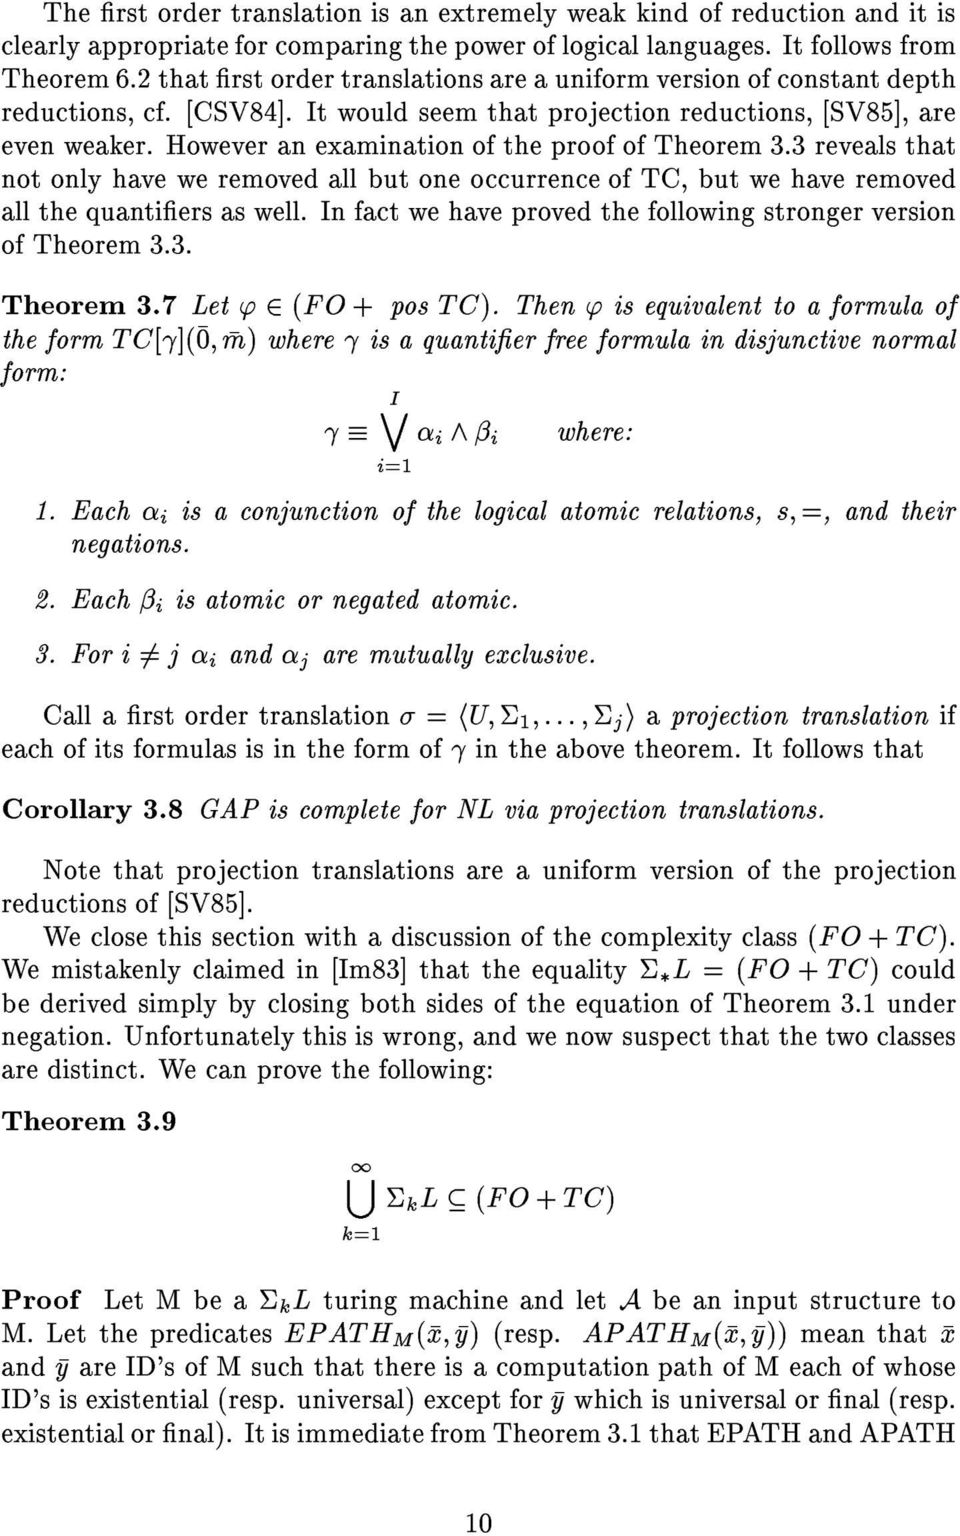 However an examination of the proof of Theorem 3.3 reveals that not only have we removed all but one occurrence of TC, but we have removed all the quantiers as well.